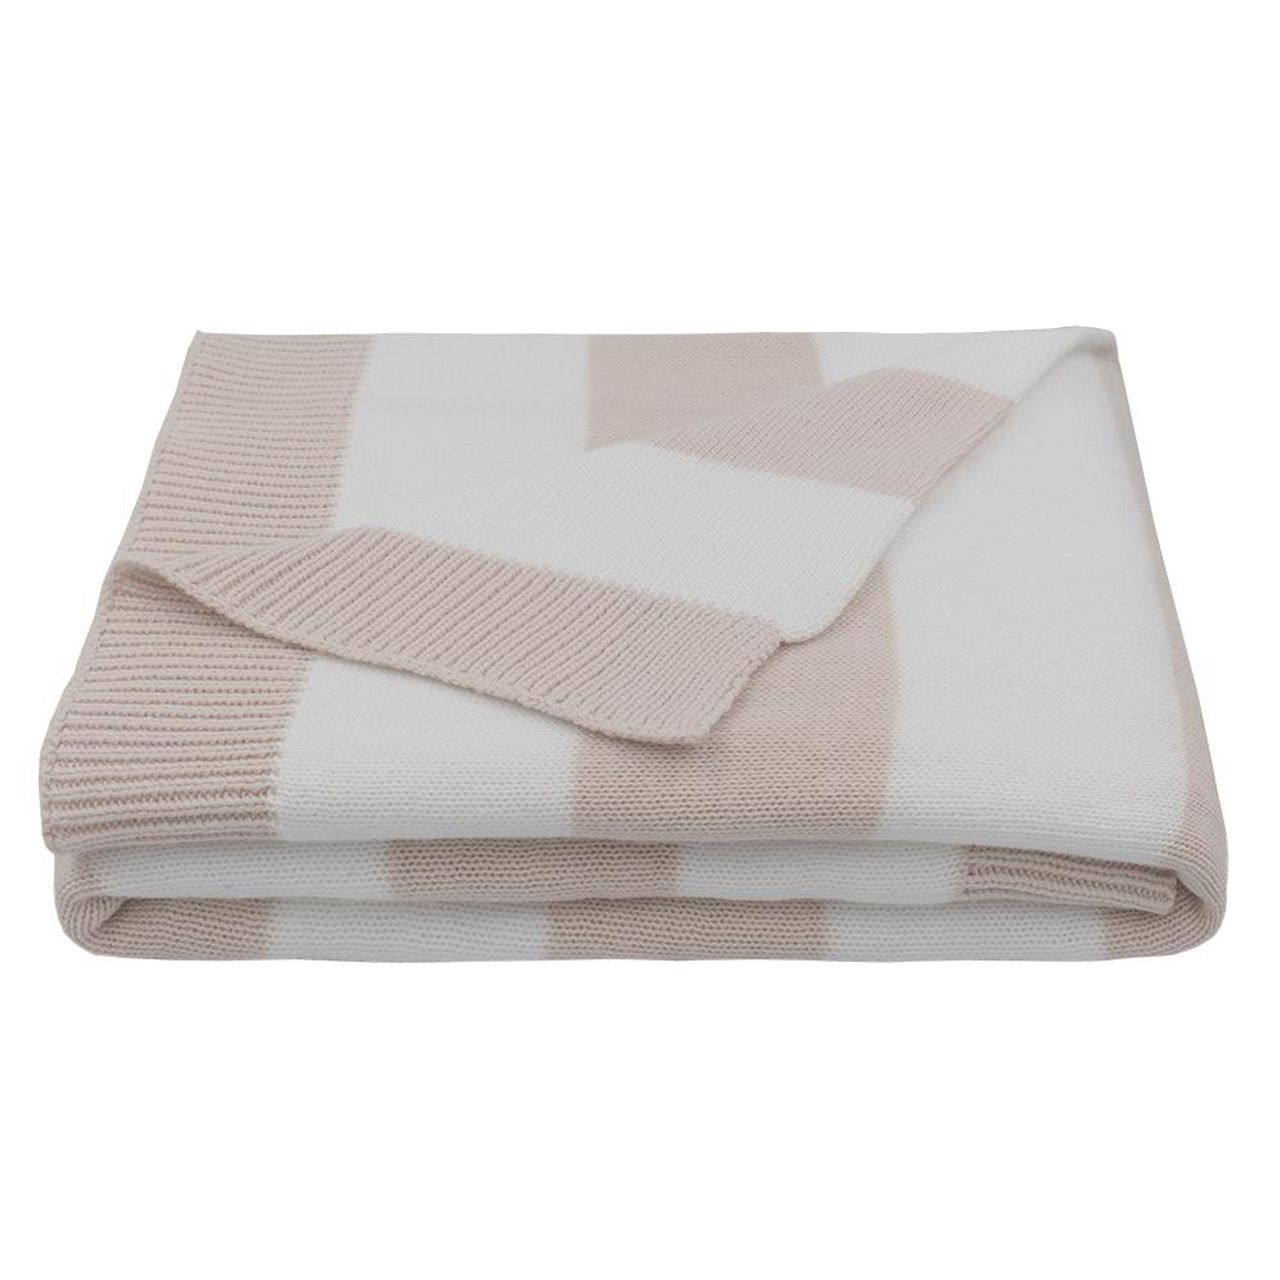 Living Textiles Cotton Knit Pram Striped Blanket at Baby Barn Discounts The stylish and functional and made from 100% cotton, this blanket and designed to be the perfect baby essential